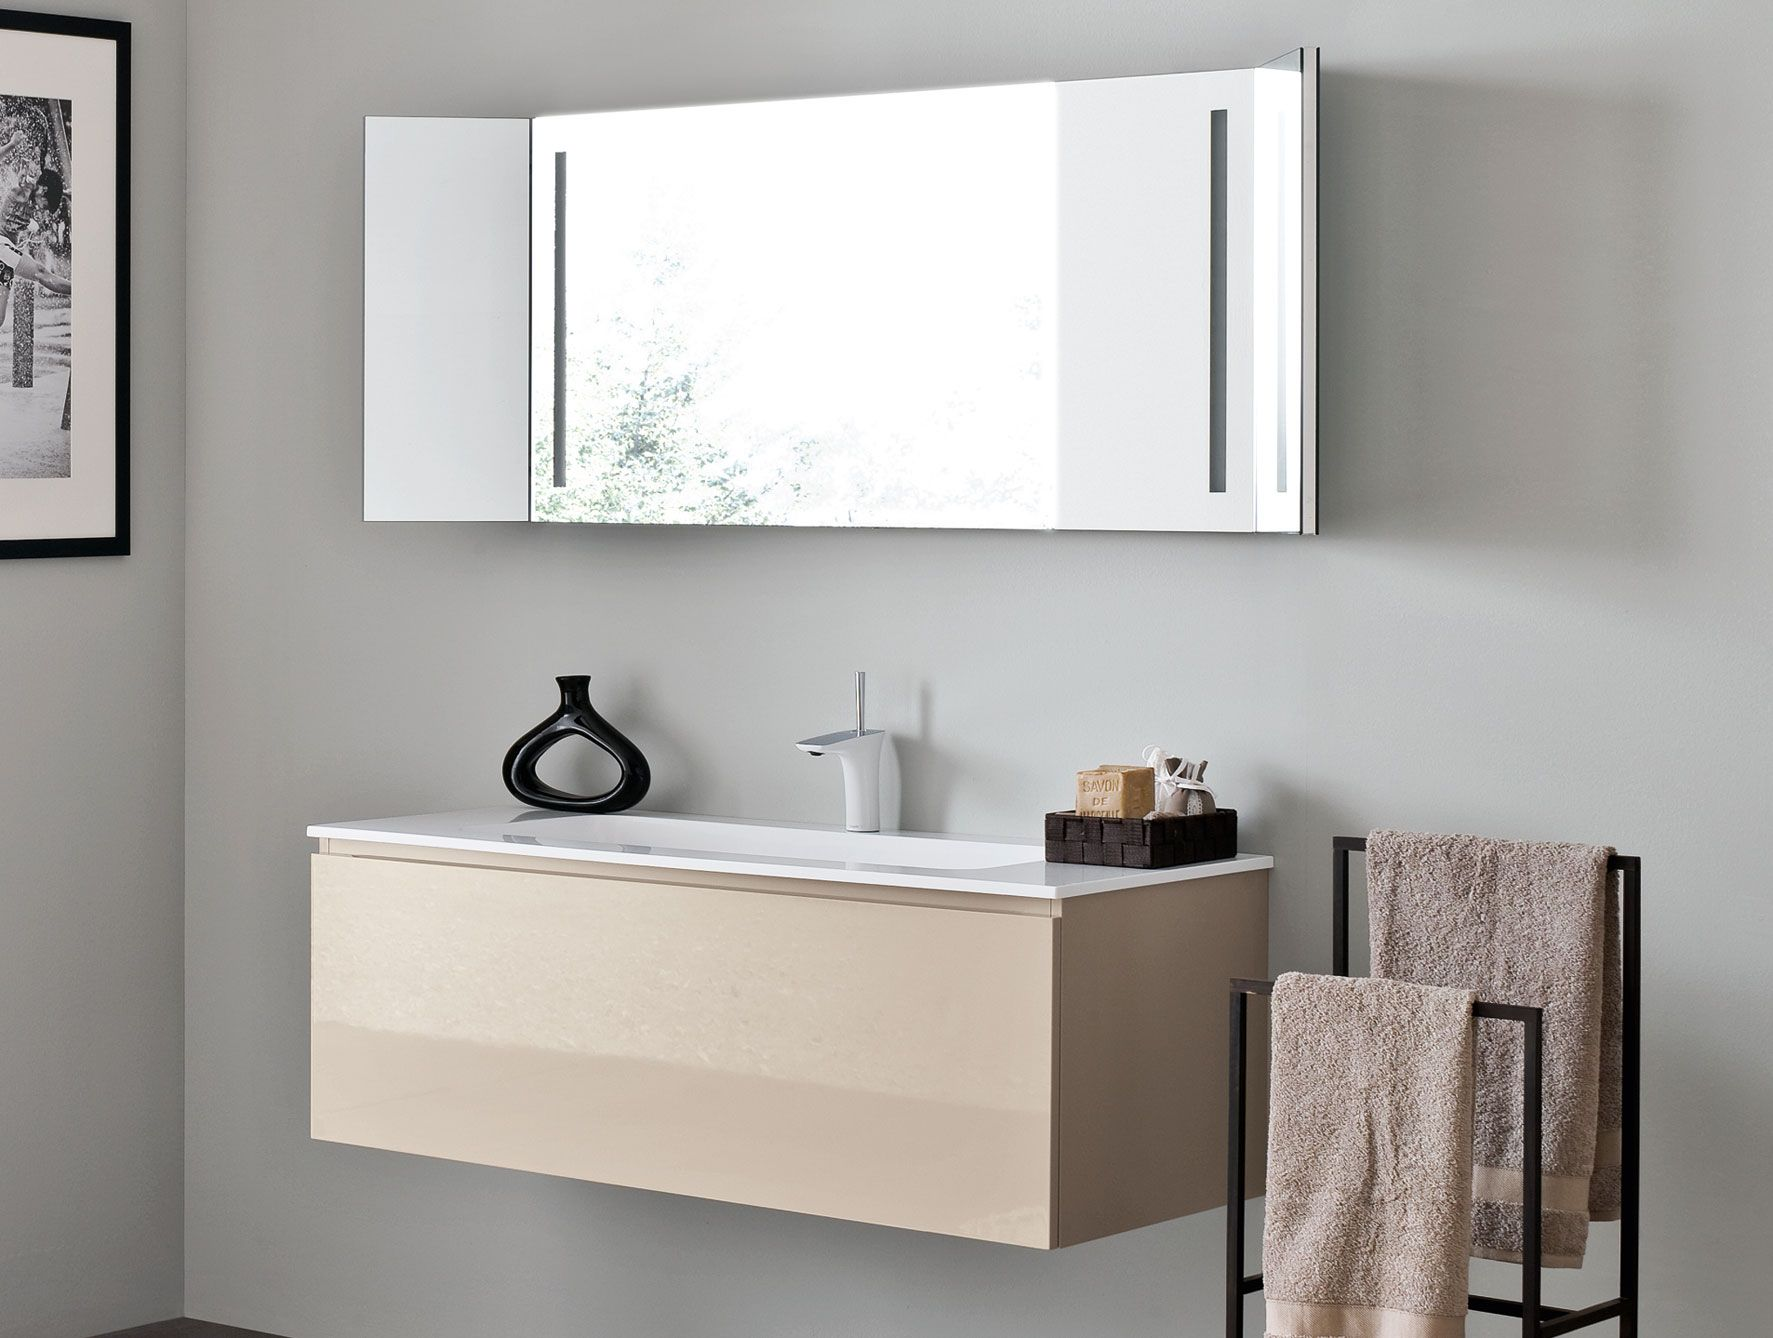 Bathroom Sinks Miami small-wall-mounted-bathroom-sinks | home decoration ideas